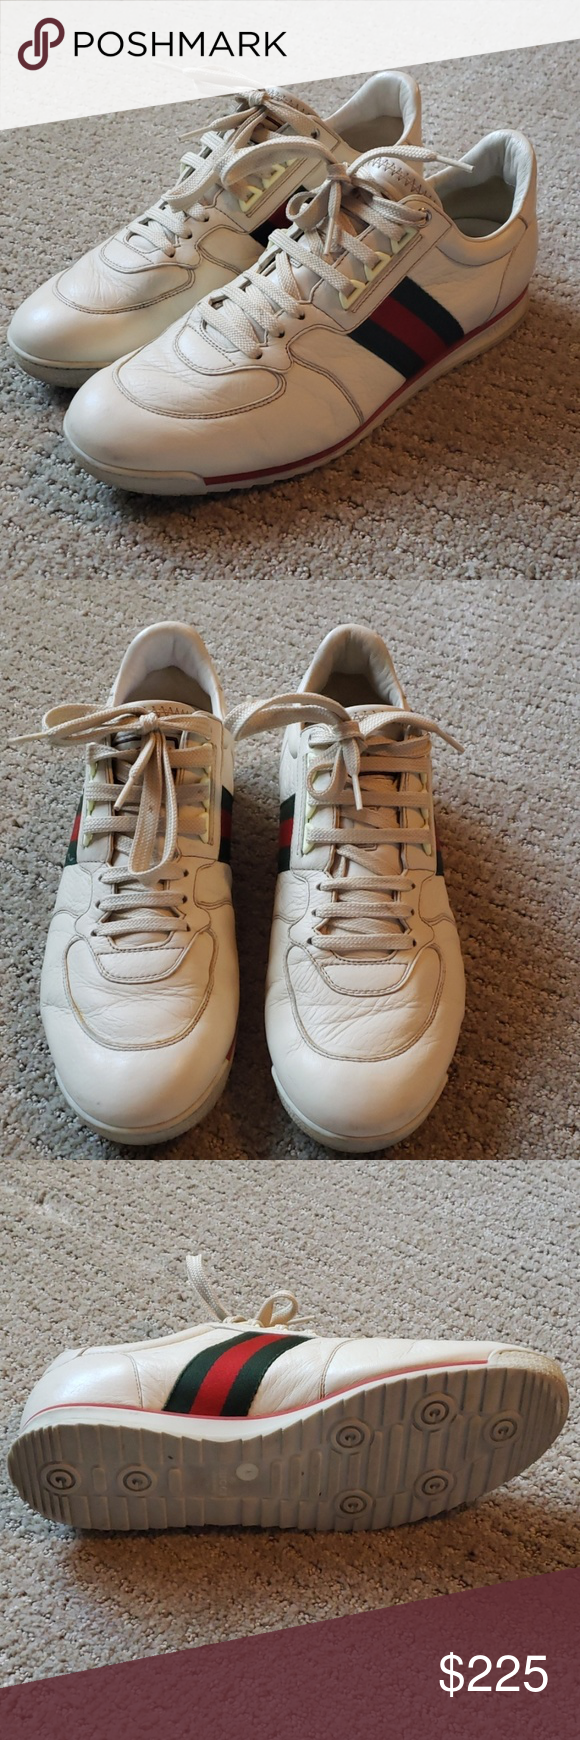 835435b56 Gucci Mens Leather sneakers 243825 size us 8 Good condition. Purchased at  Gucci in Beverly Center. Only worn a handful of times.